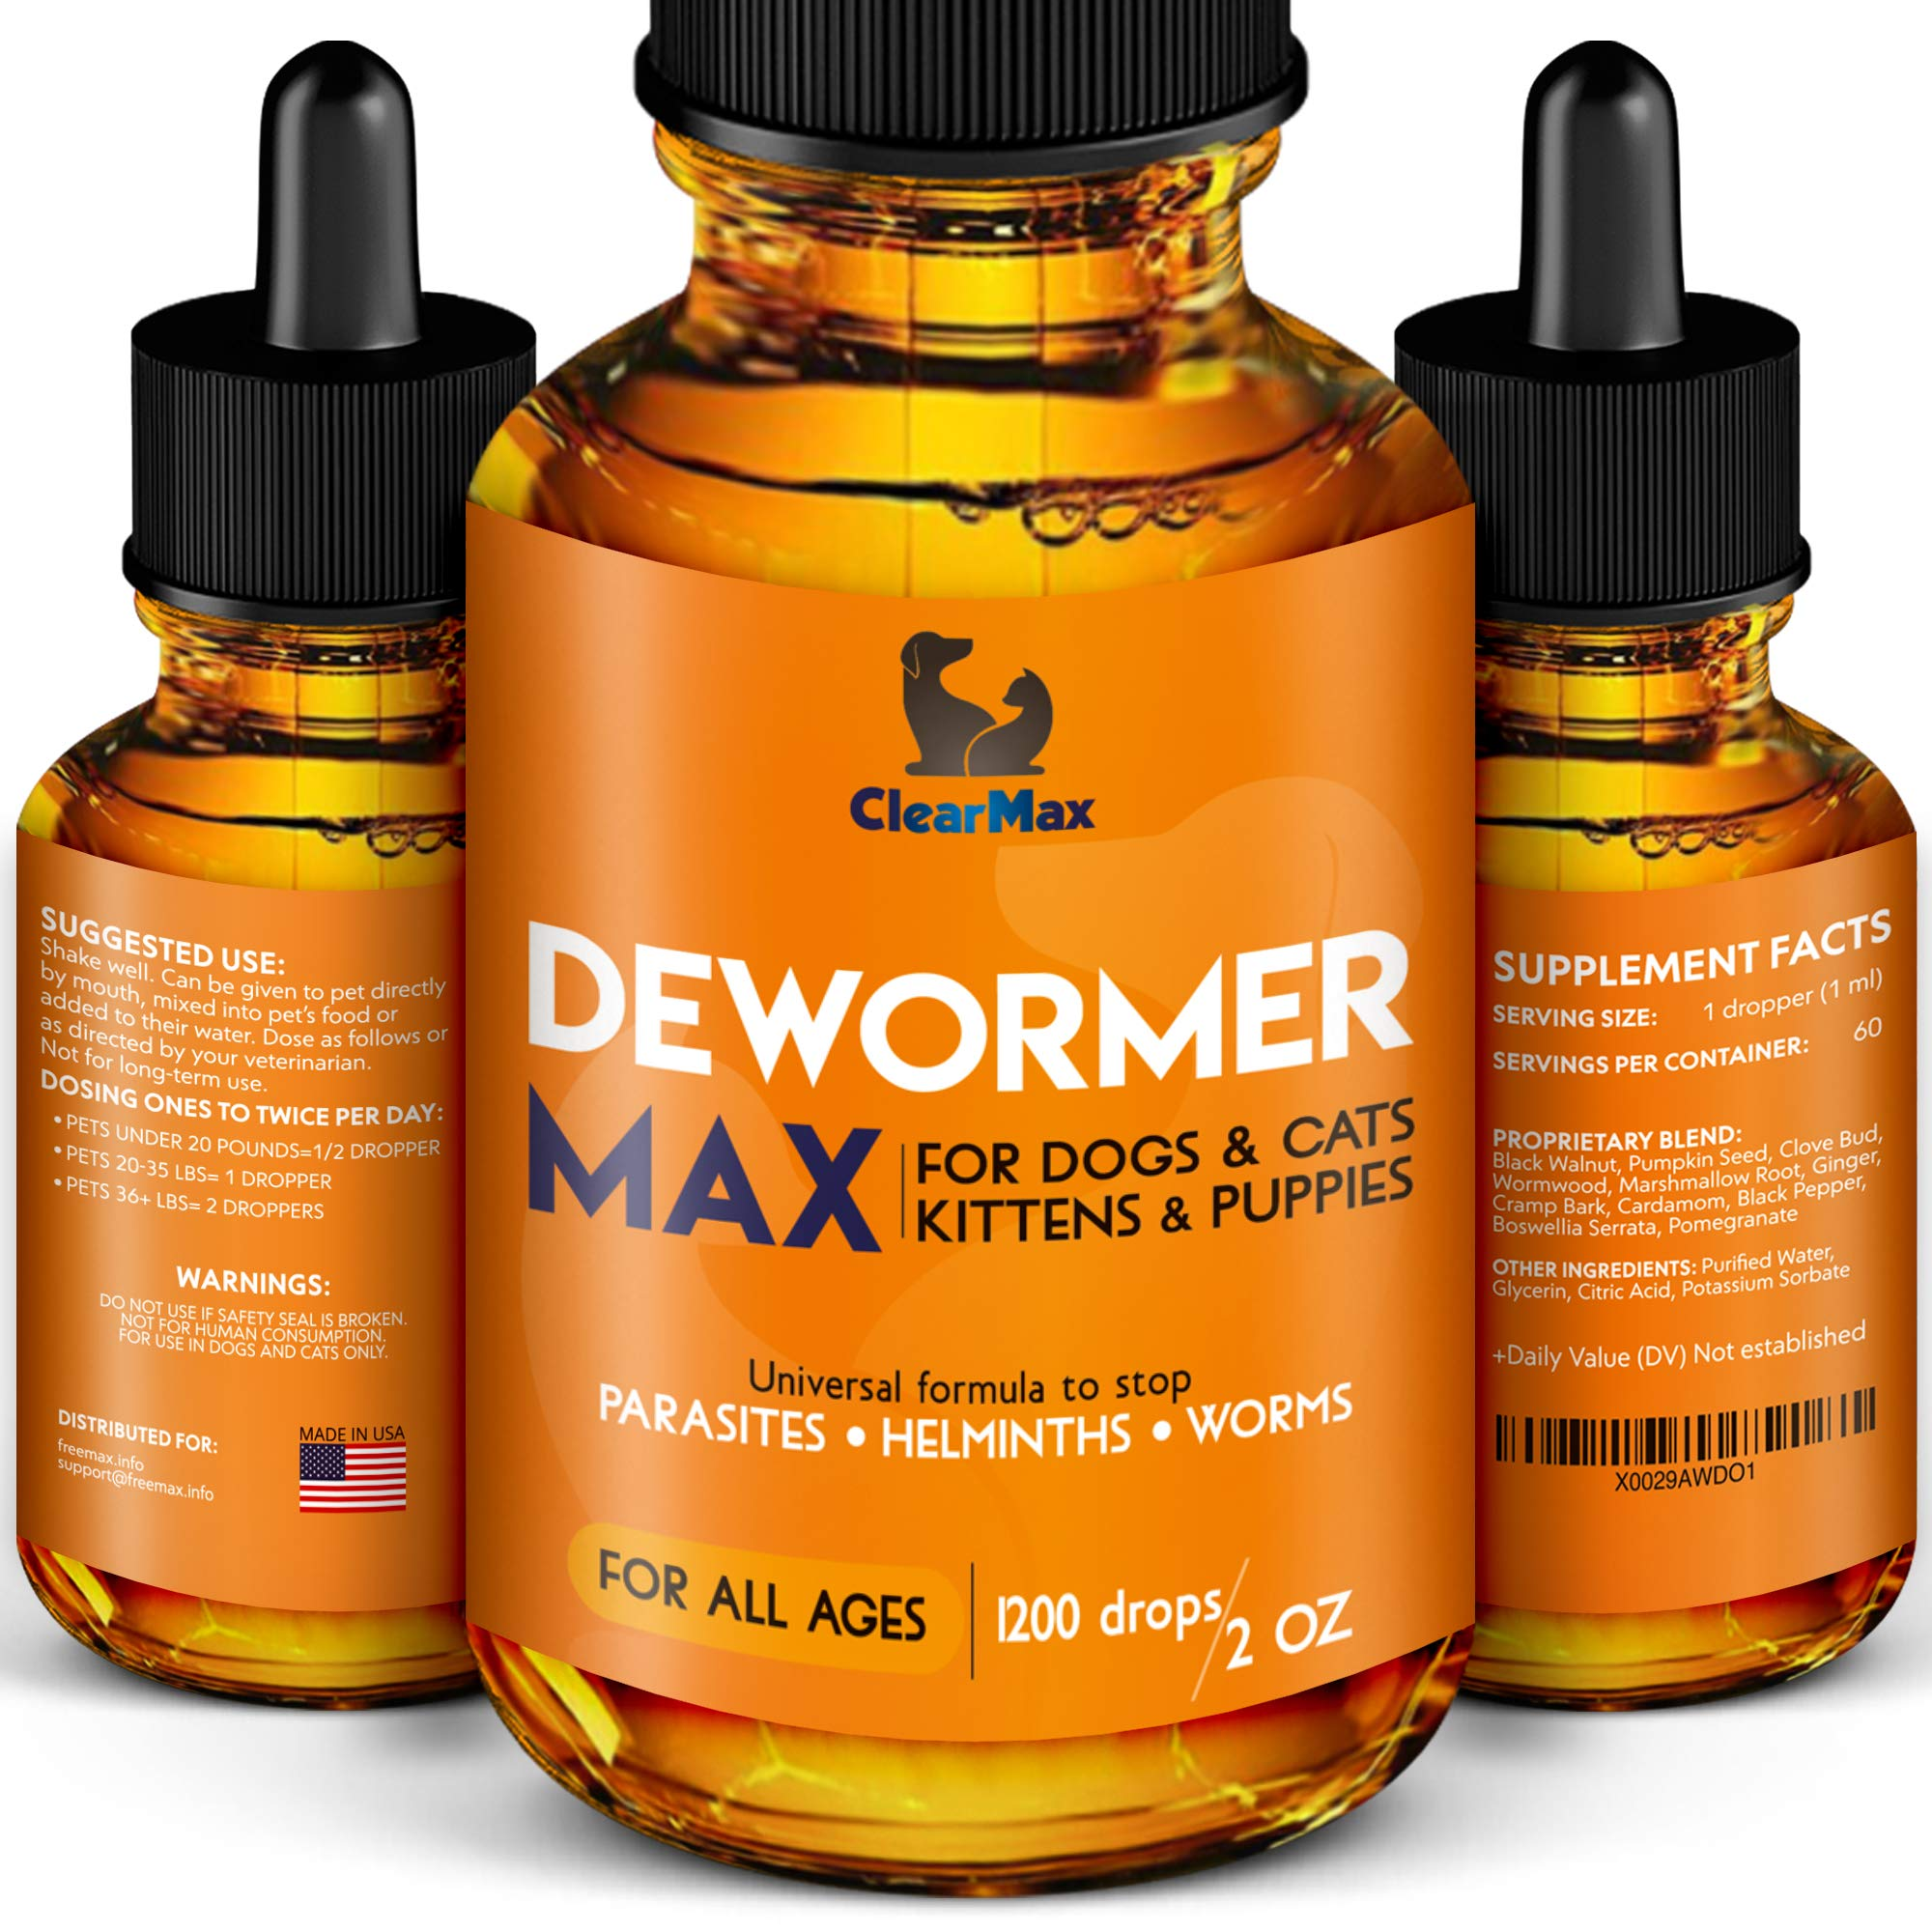 Dewormer + for Dogs and Cats - Natural Treatment from Tapeworm, Roundworm, Whipworm, Hookworm, and Nematode - Liquid Herbal Dewormer - for Pets Natural Canine Dewormer for Dogs (2 oz) by Clear-Max